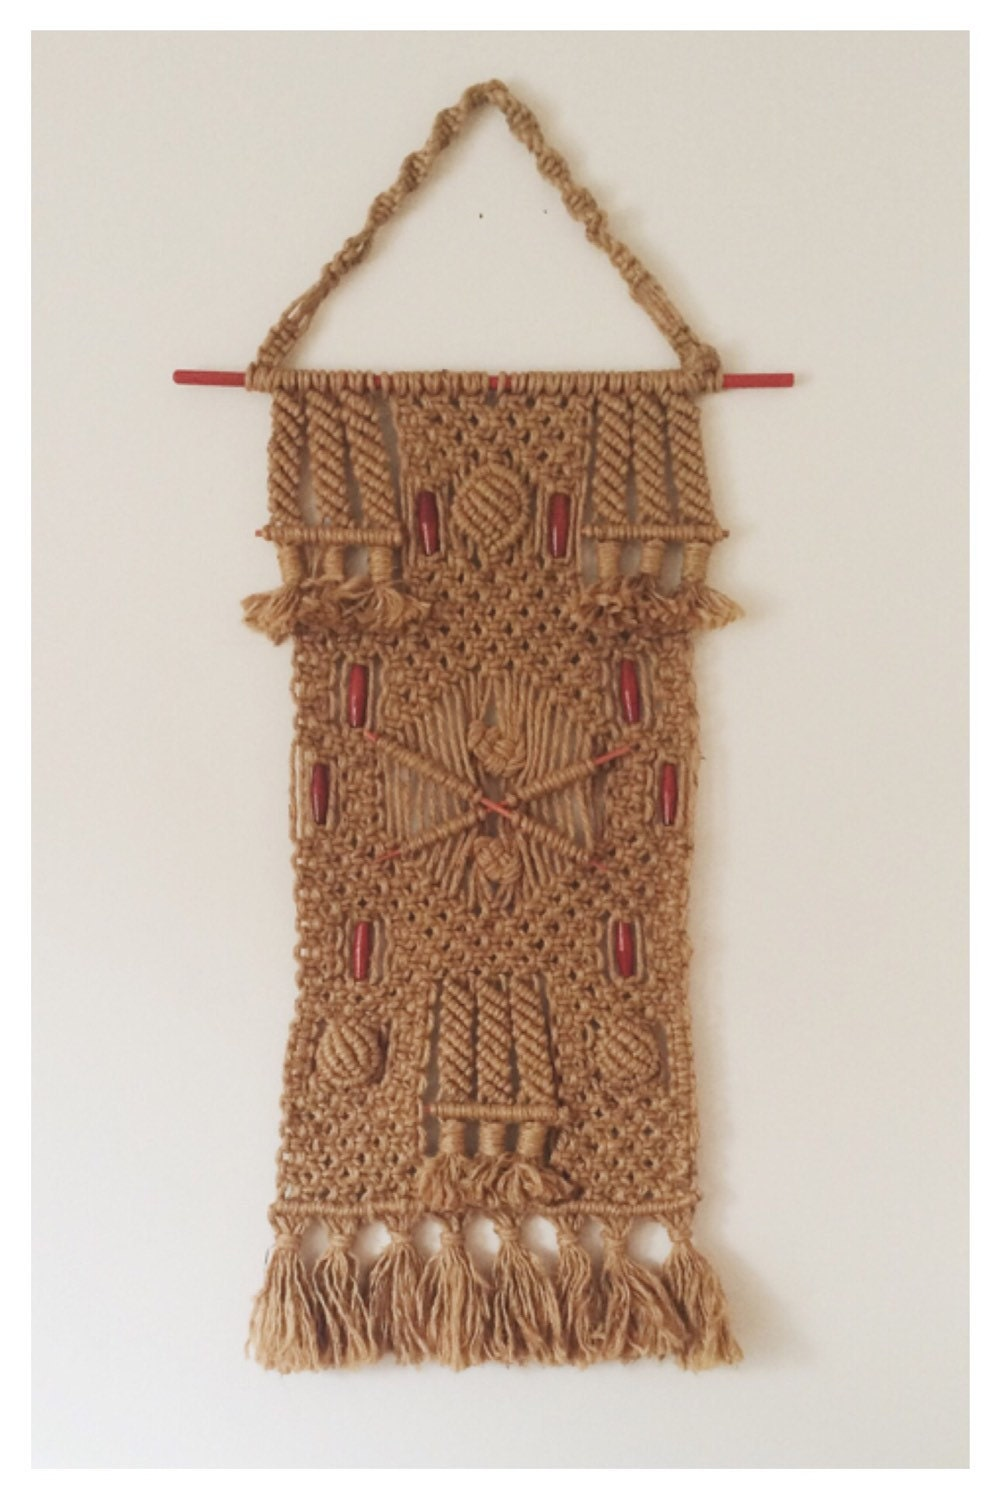 Jute macrame wall hanging large woven rope wall by for Wall hangings